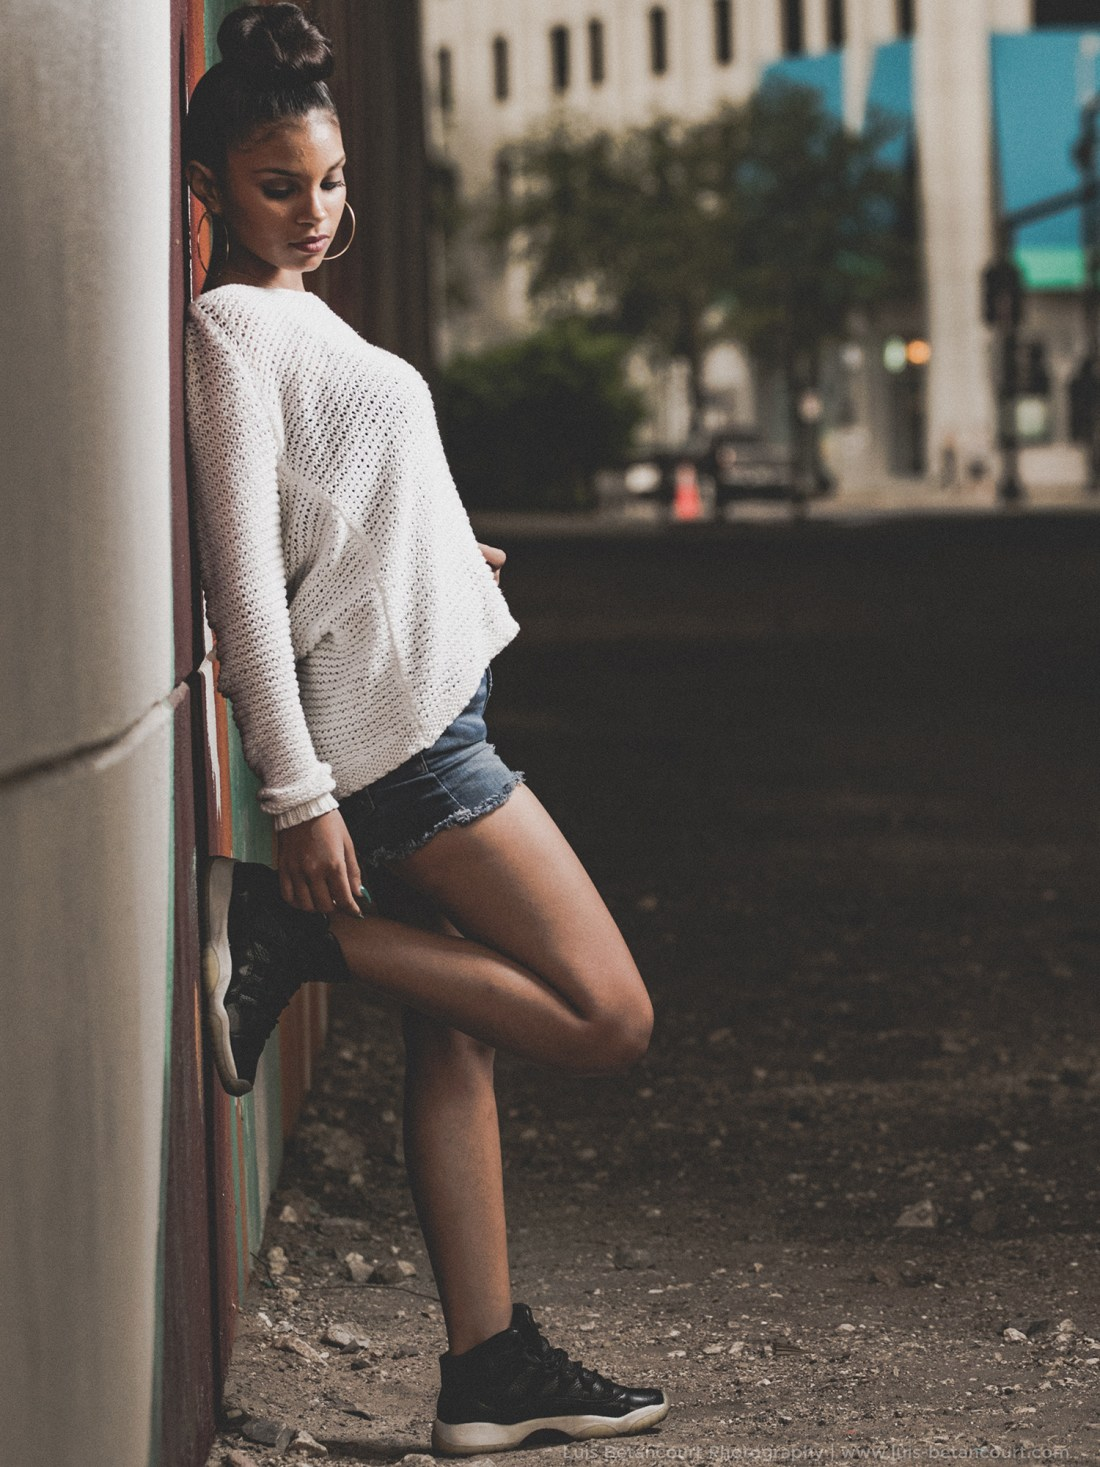 urban photography young woman reclines against a wall in a modern way luis betancourt photography